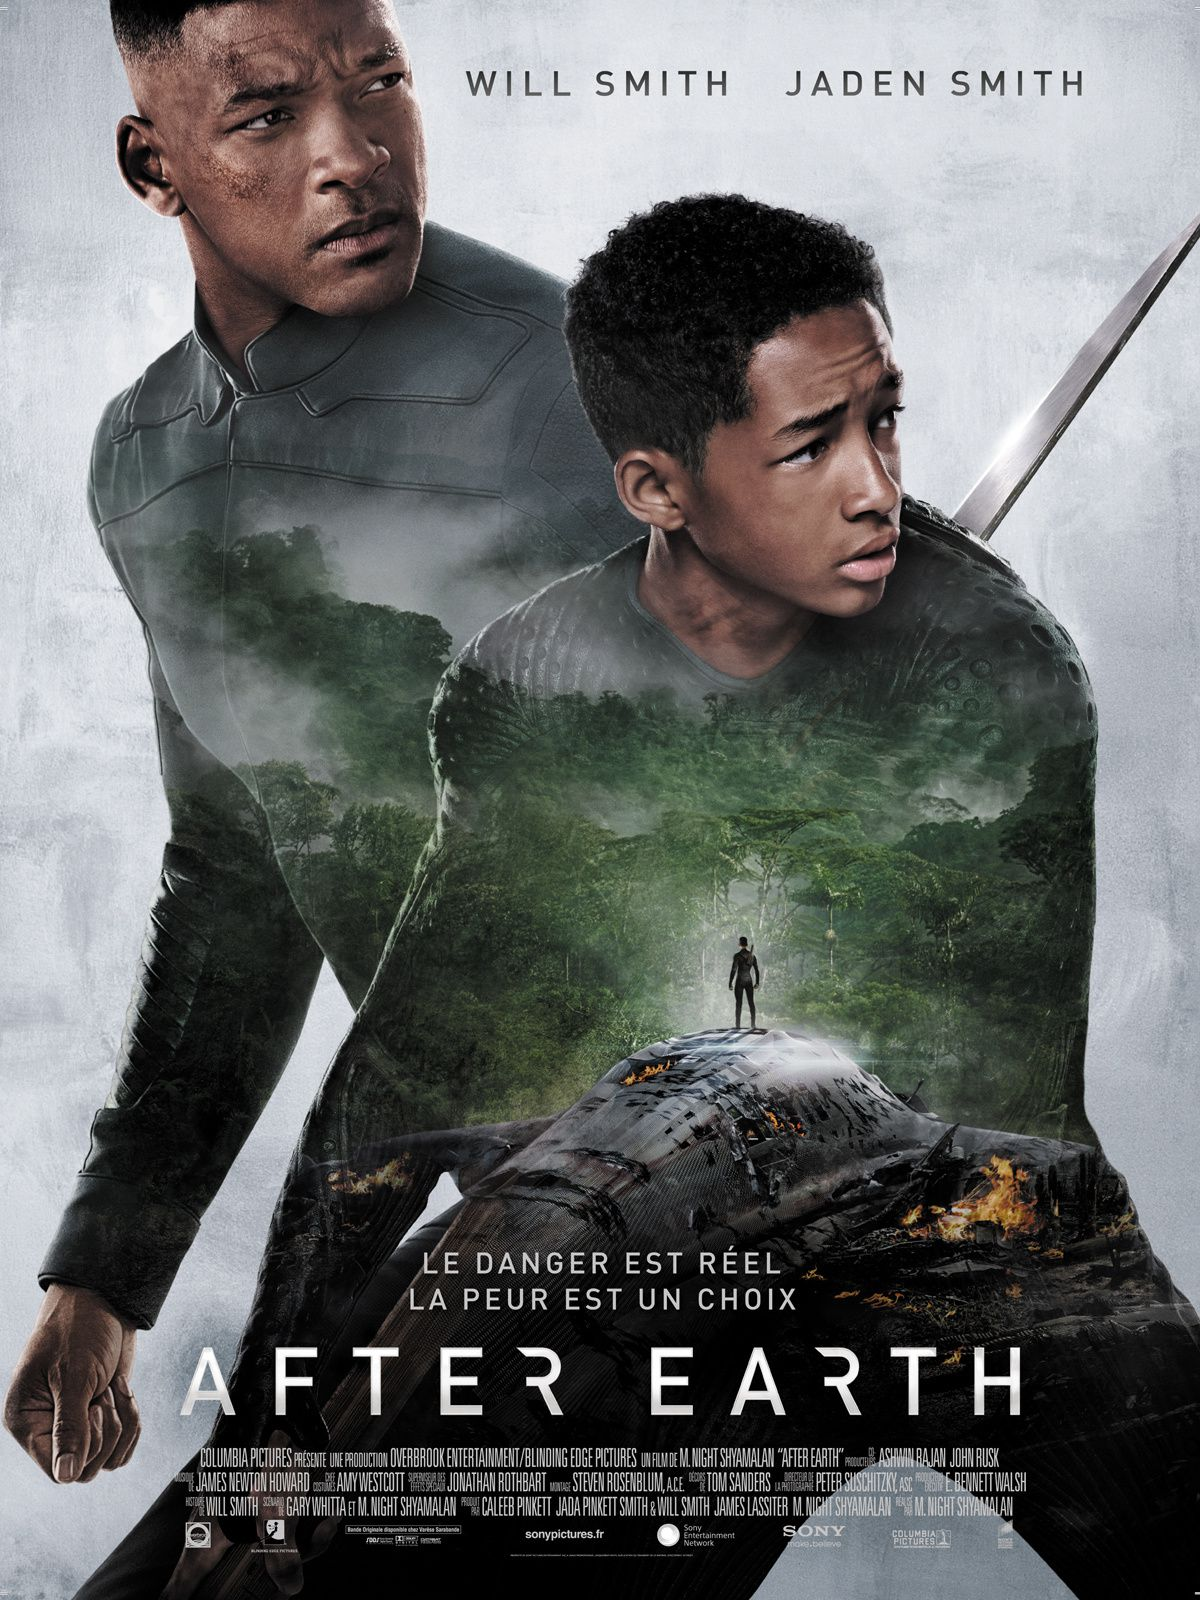 Audiences du dimanche 17 avril : l'inédit After Earth large leader.